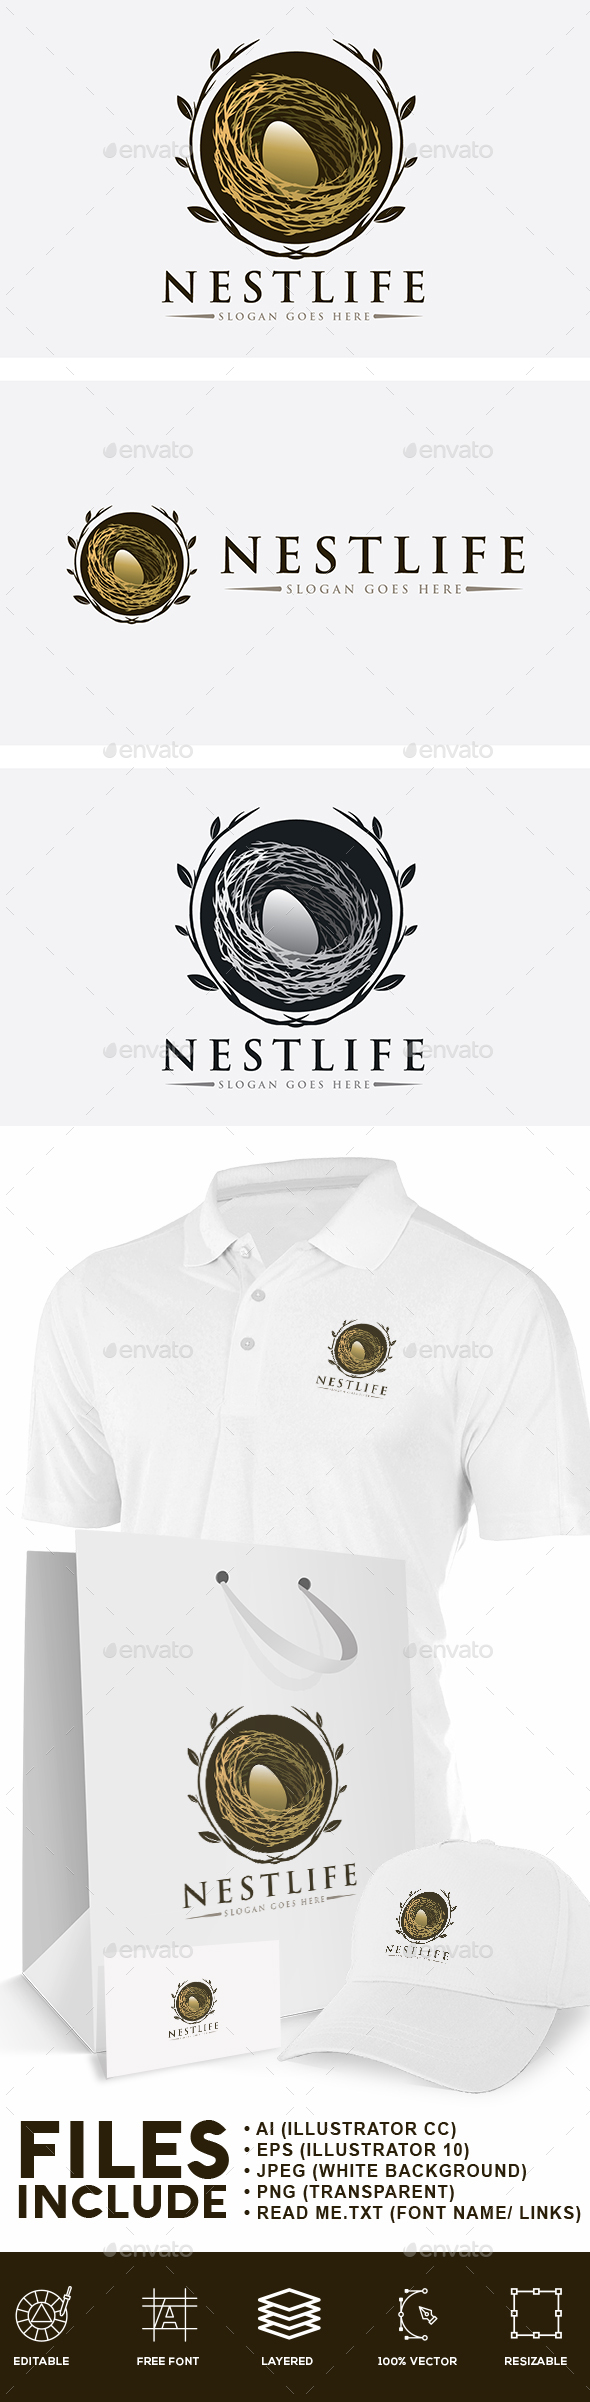 Bird Nest Logo - Nature Logo Templates